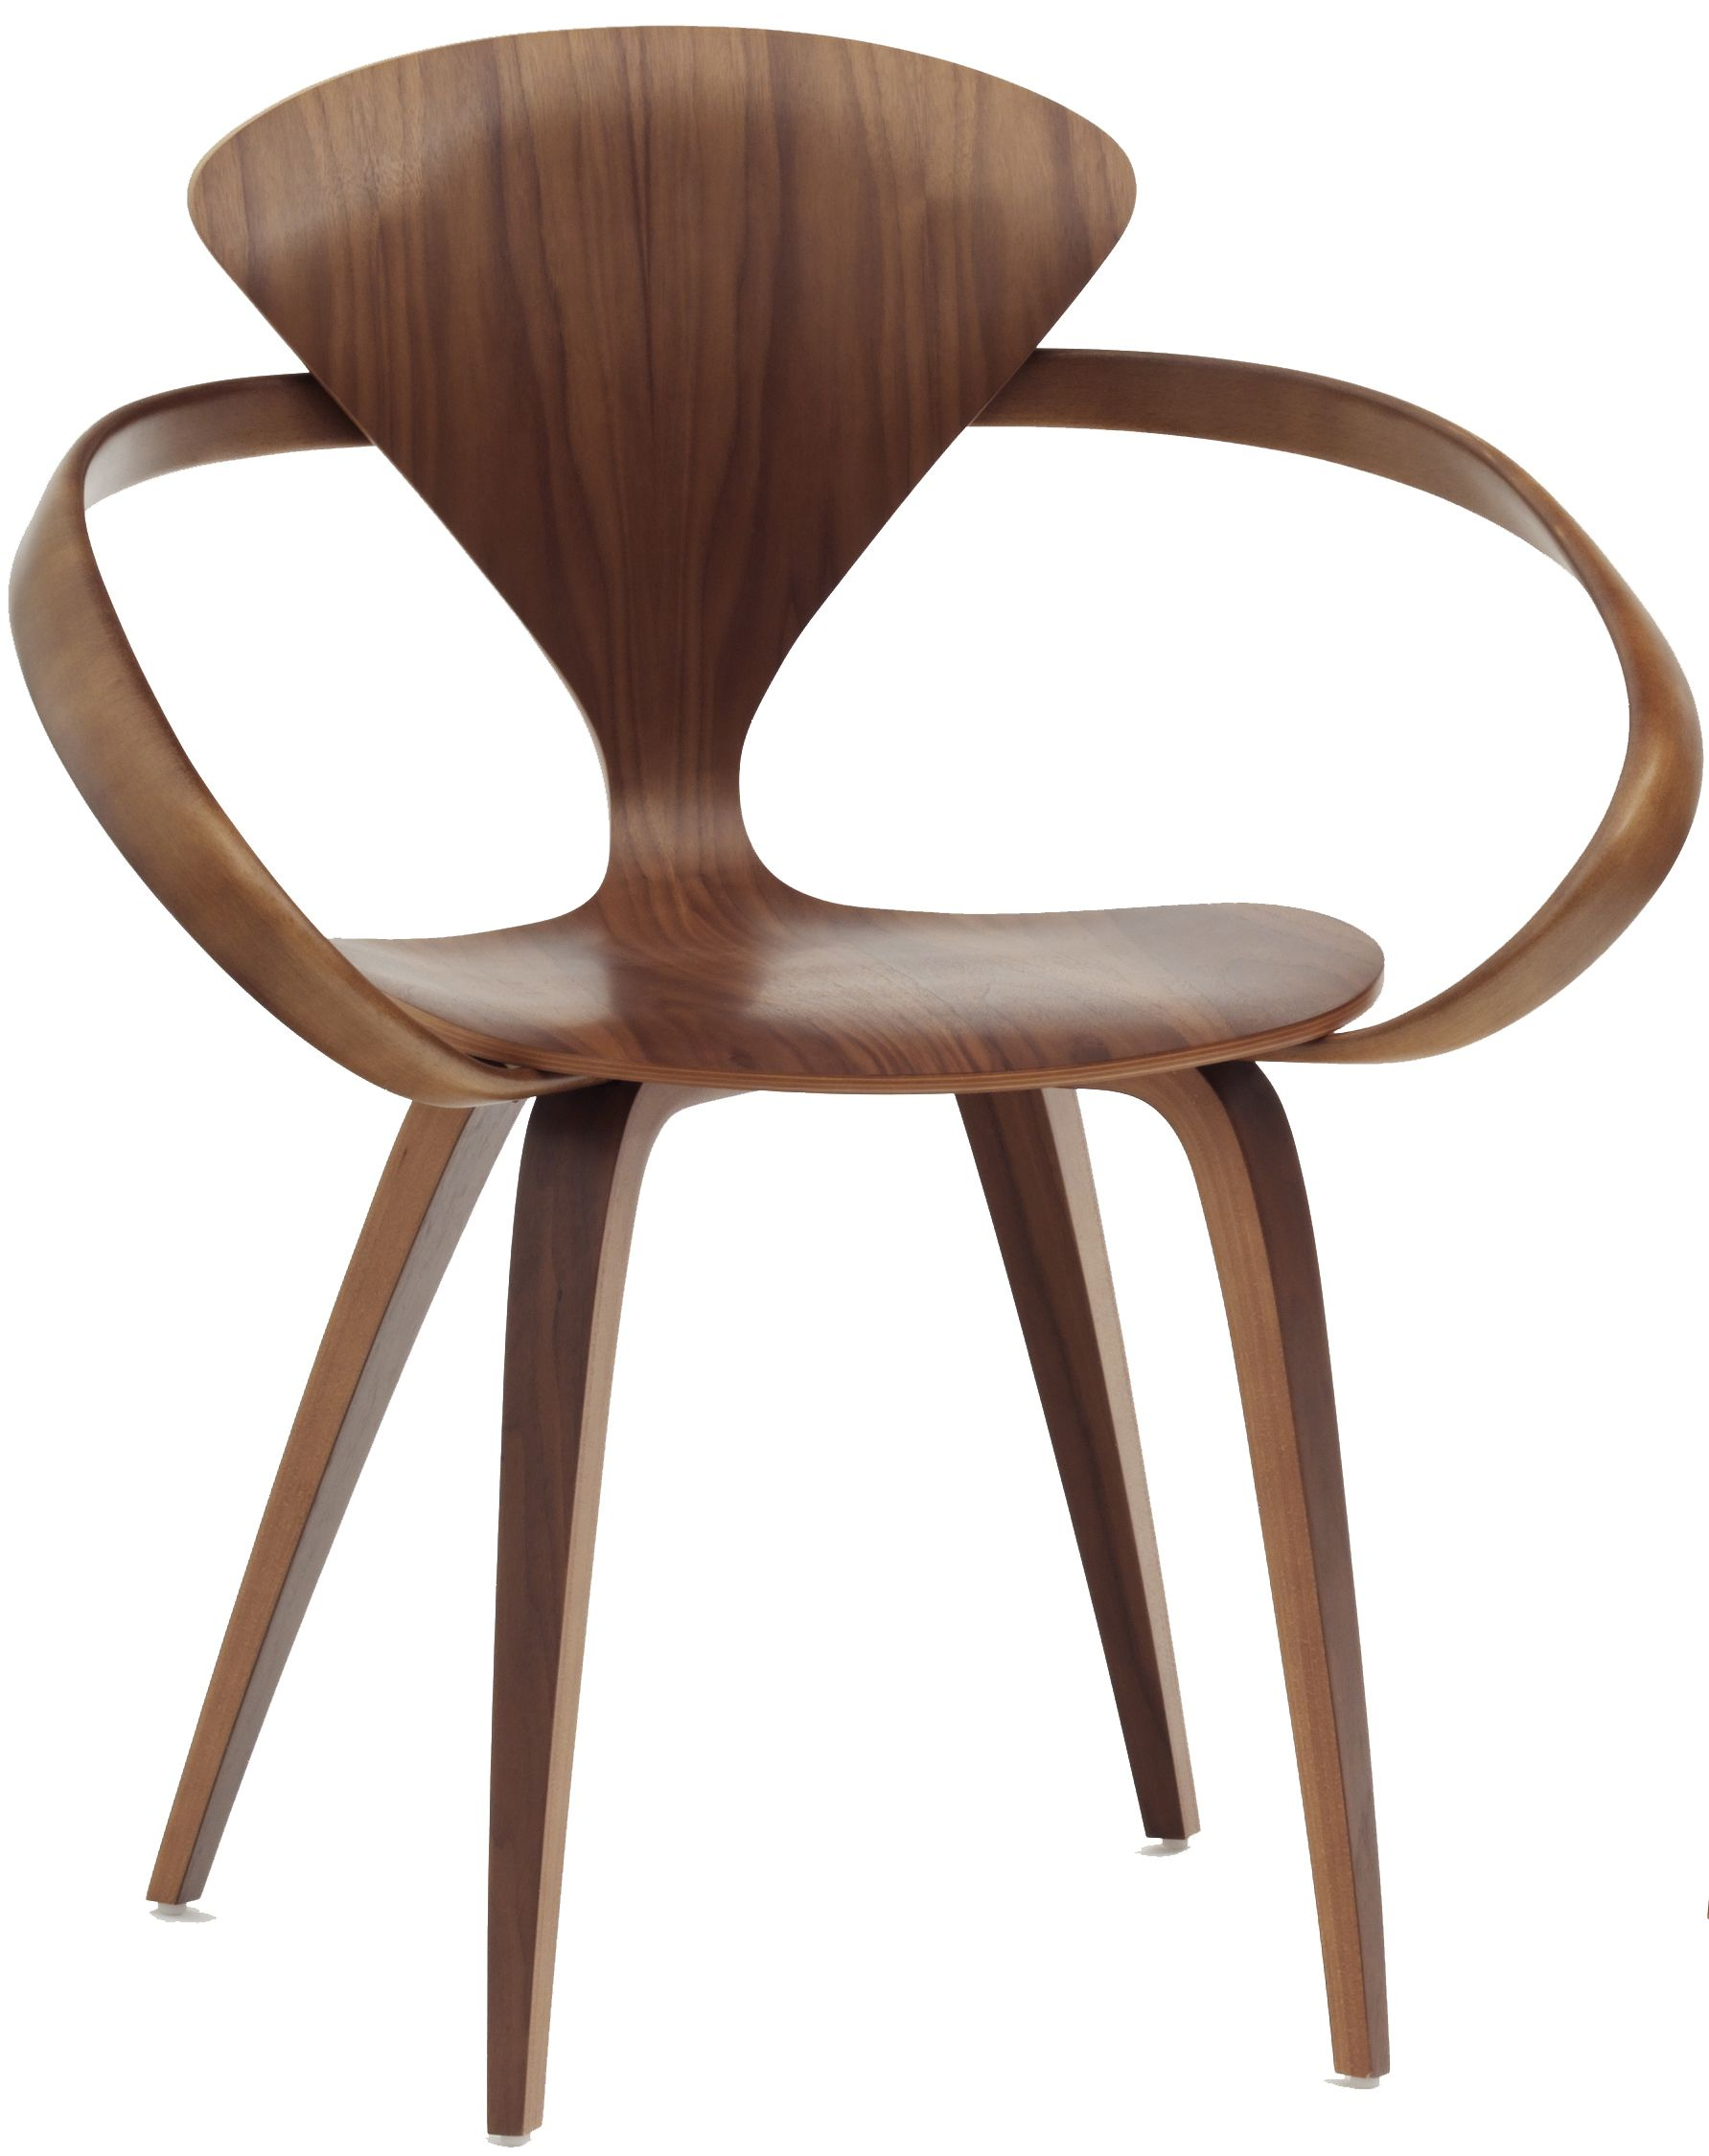 Like the 1958 original the Cherner Armchair utilizes a laminated